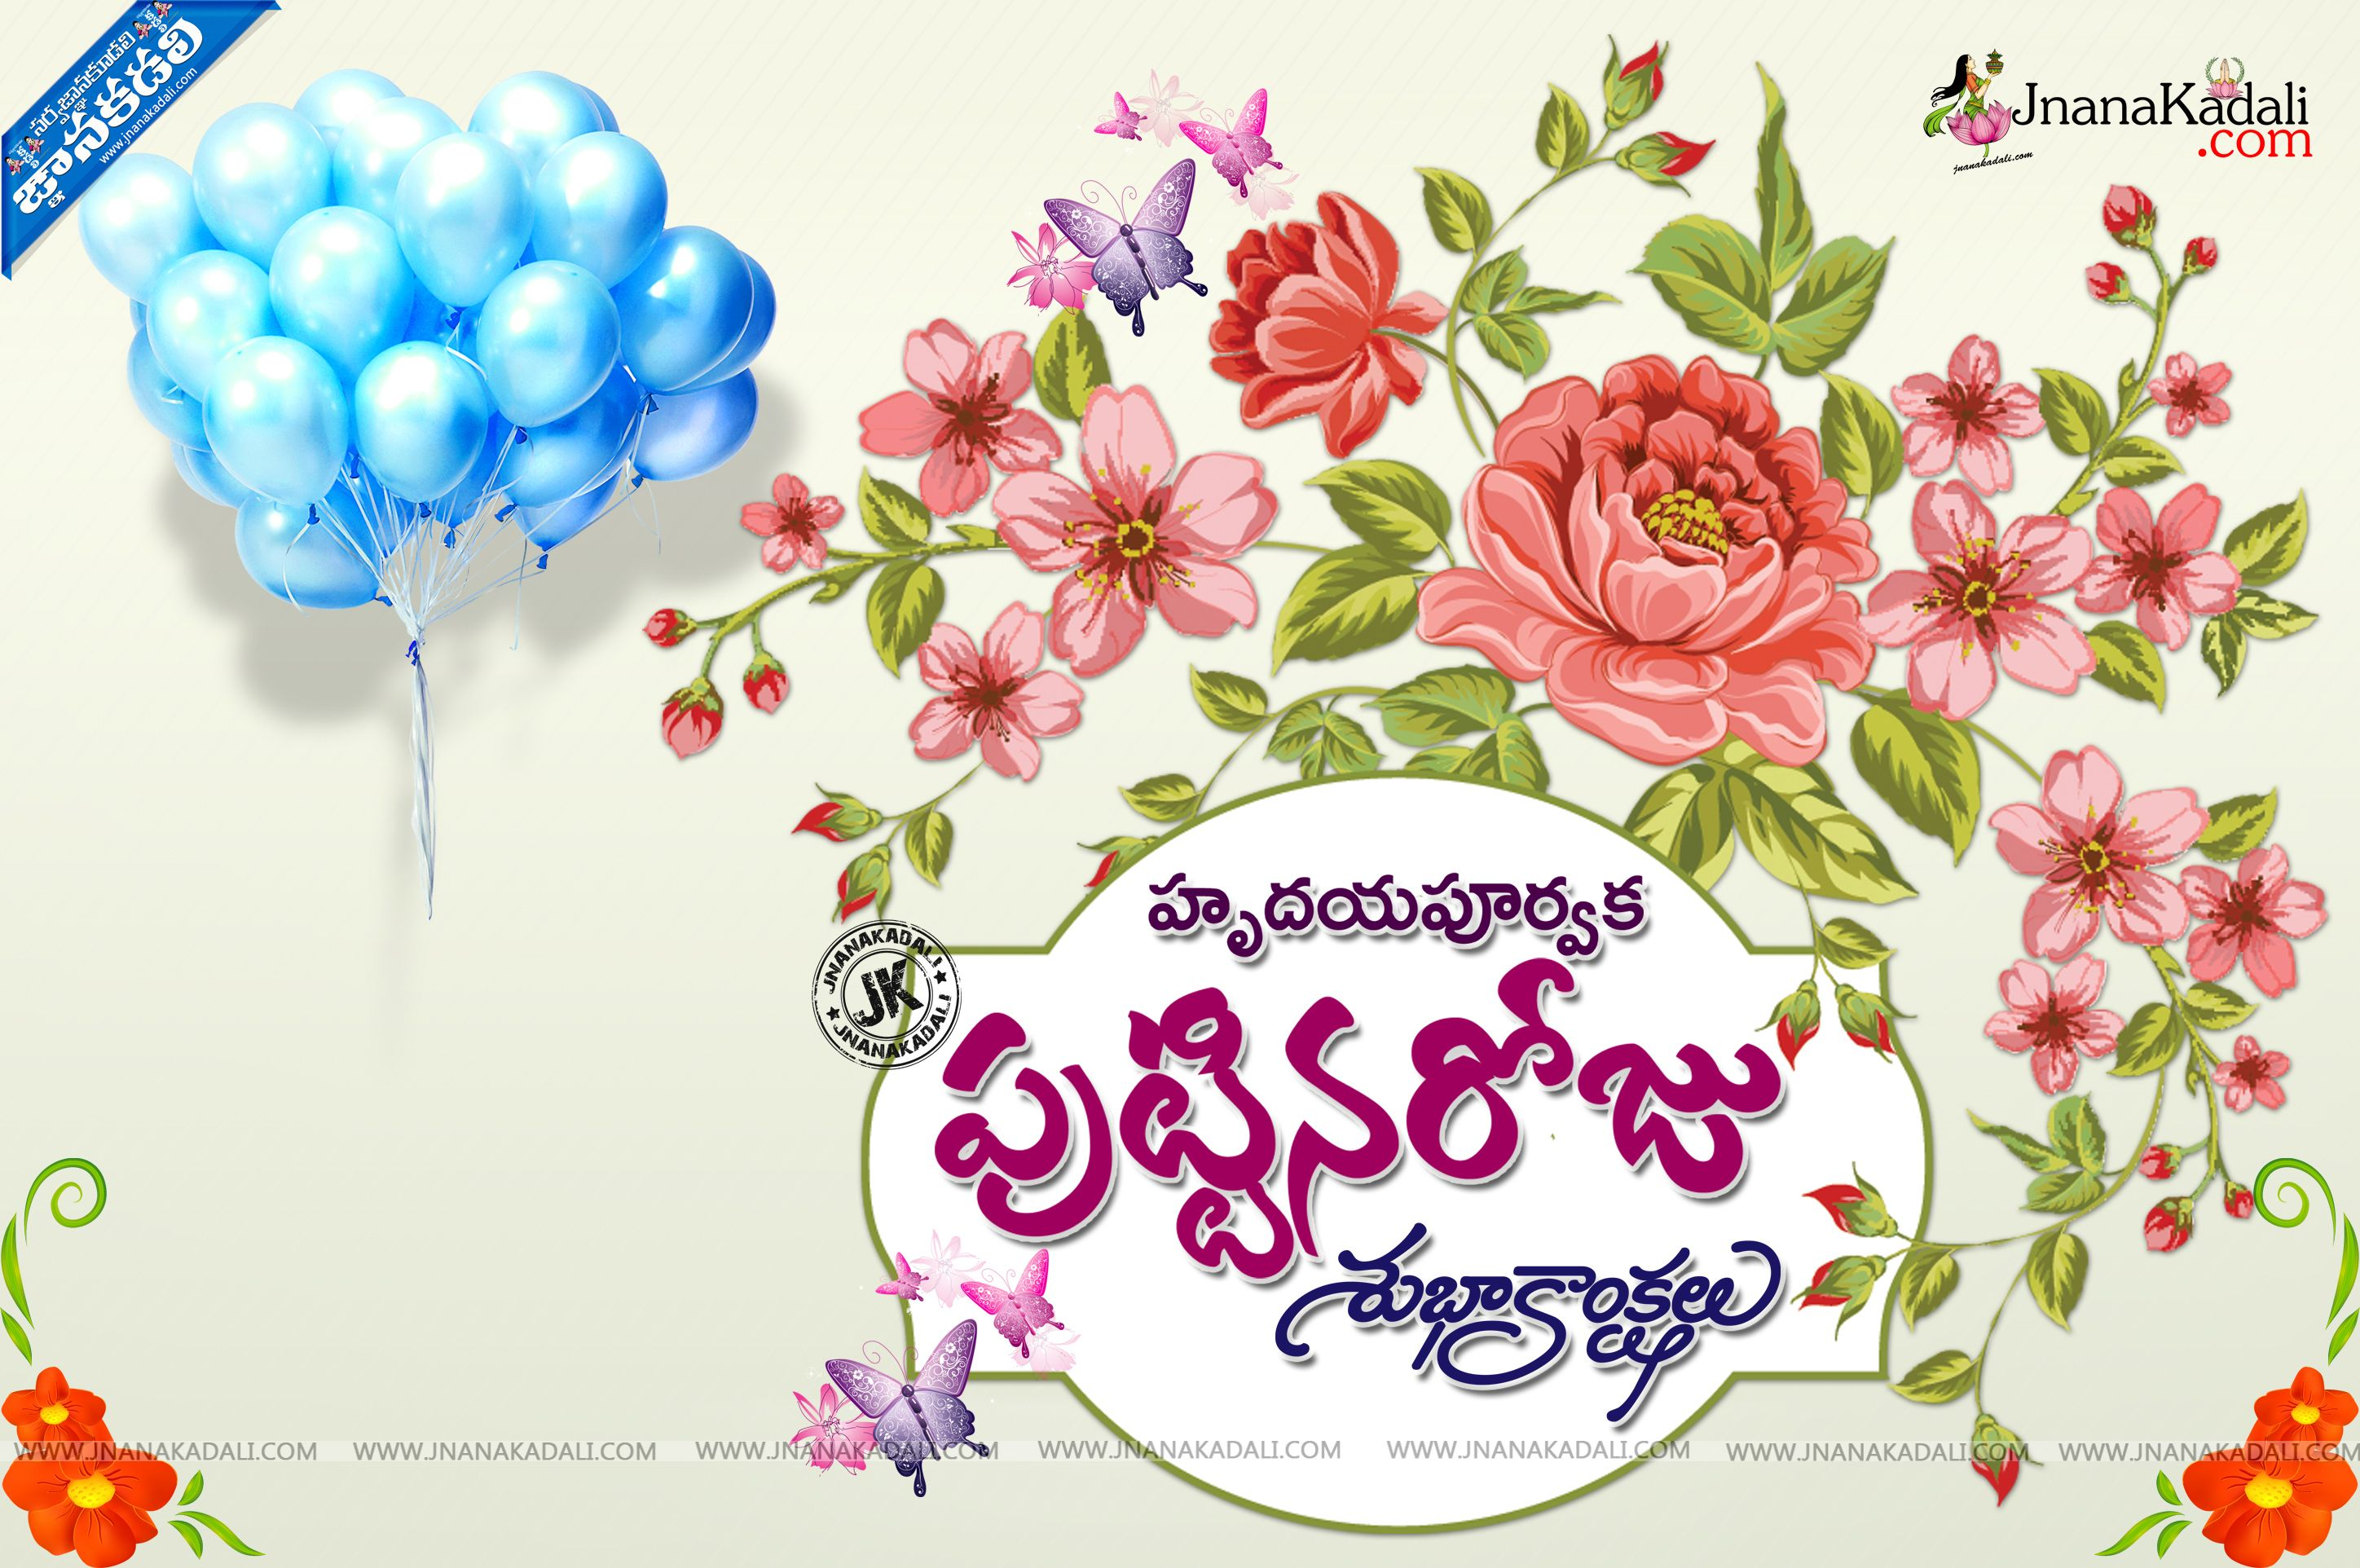 Birth Day Greetings With Images Birth Day Greetings Wallpapers Birth